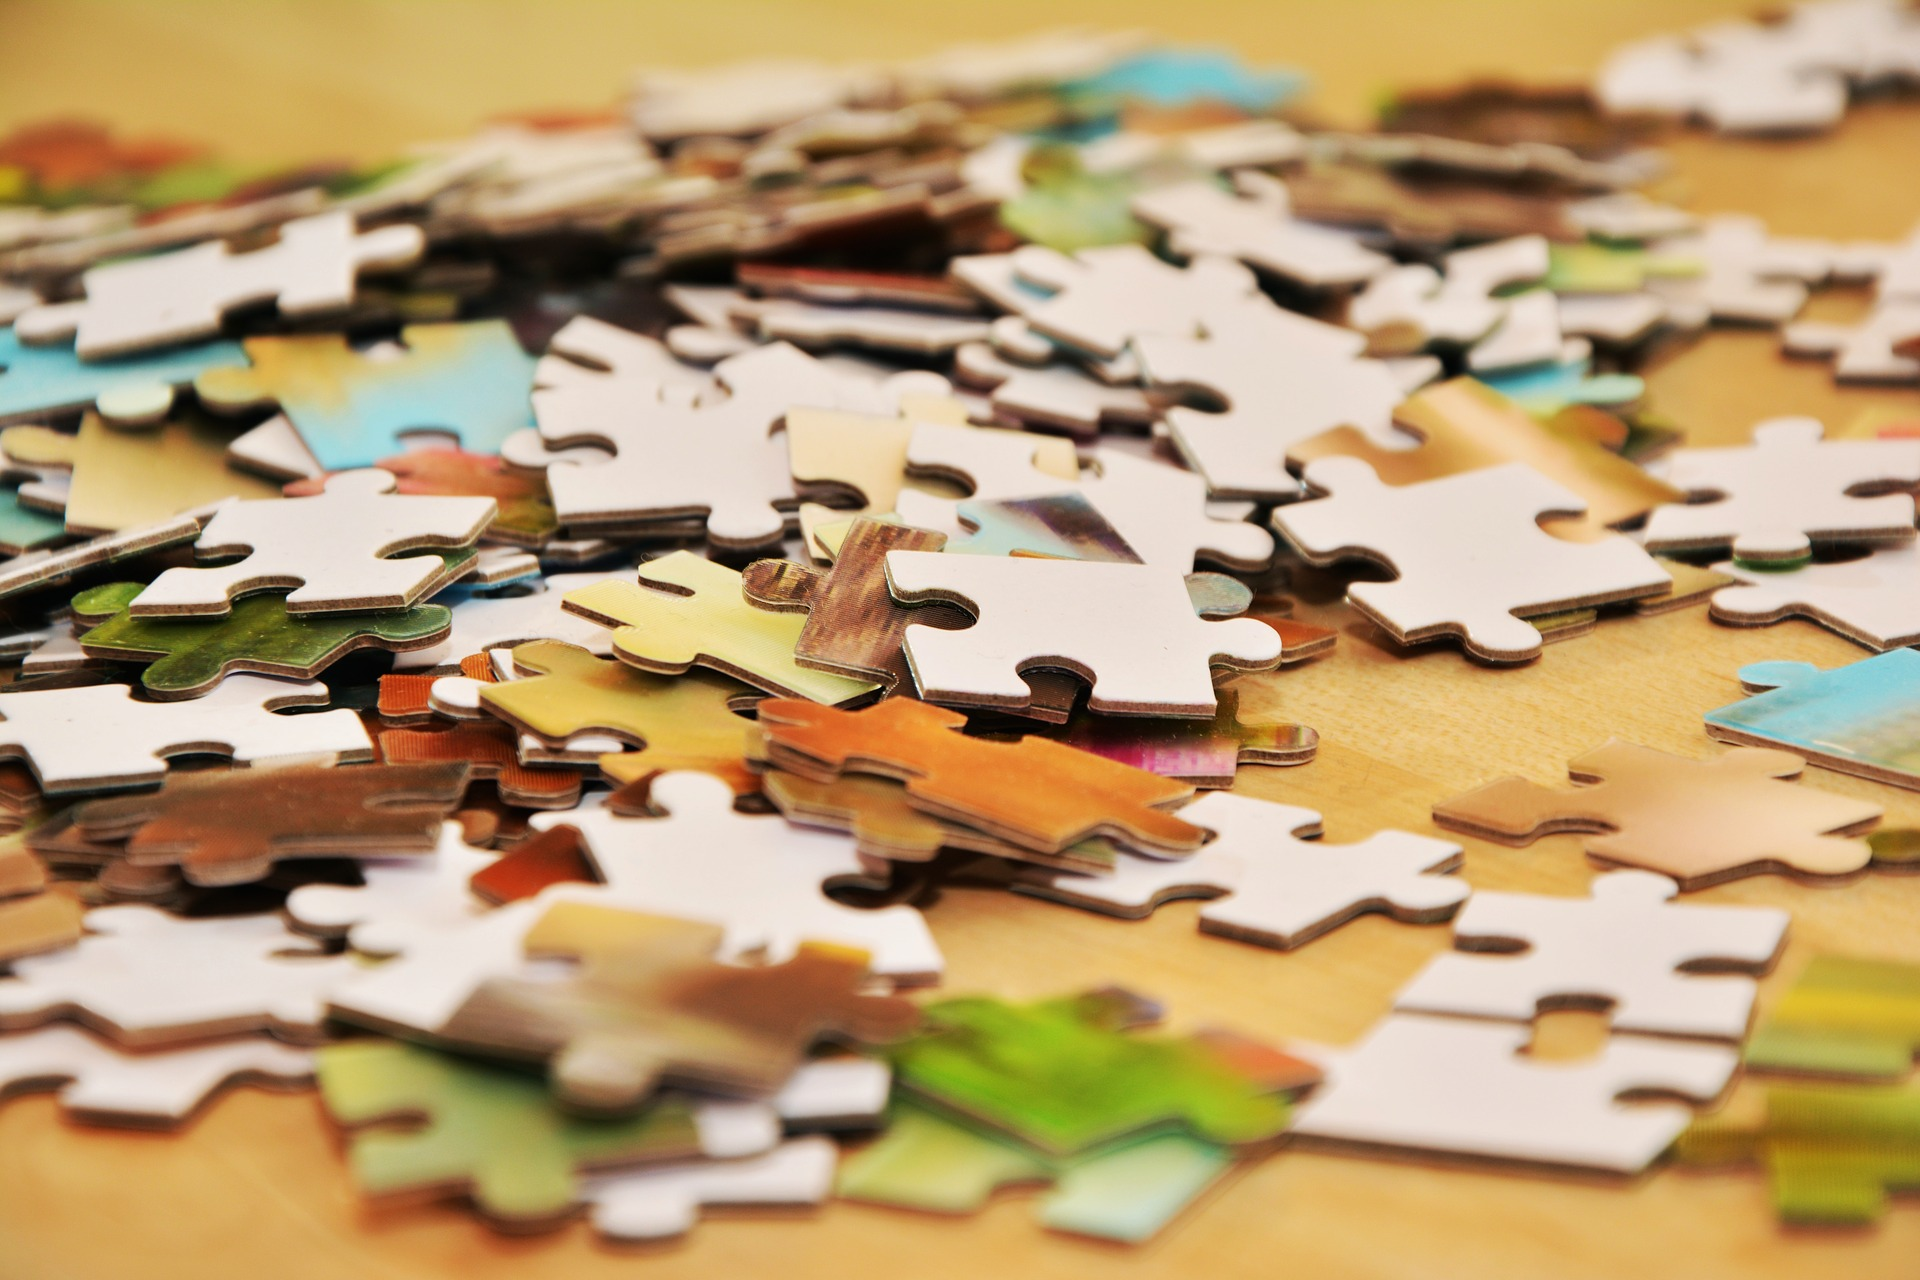 pieces-of-the-puzzle-1925425_1920.jpg